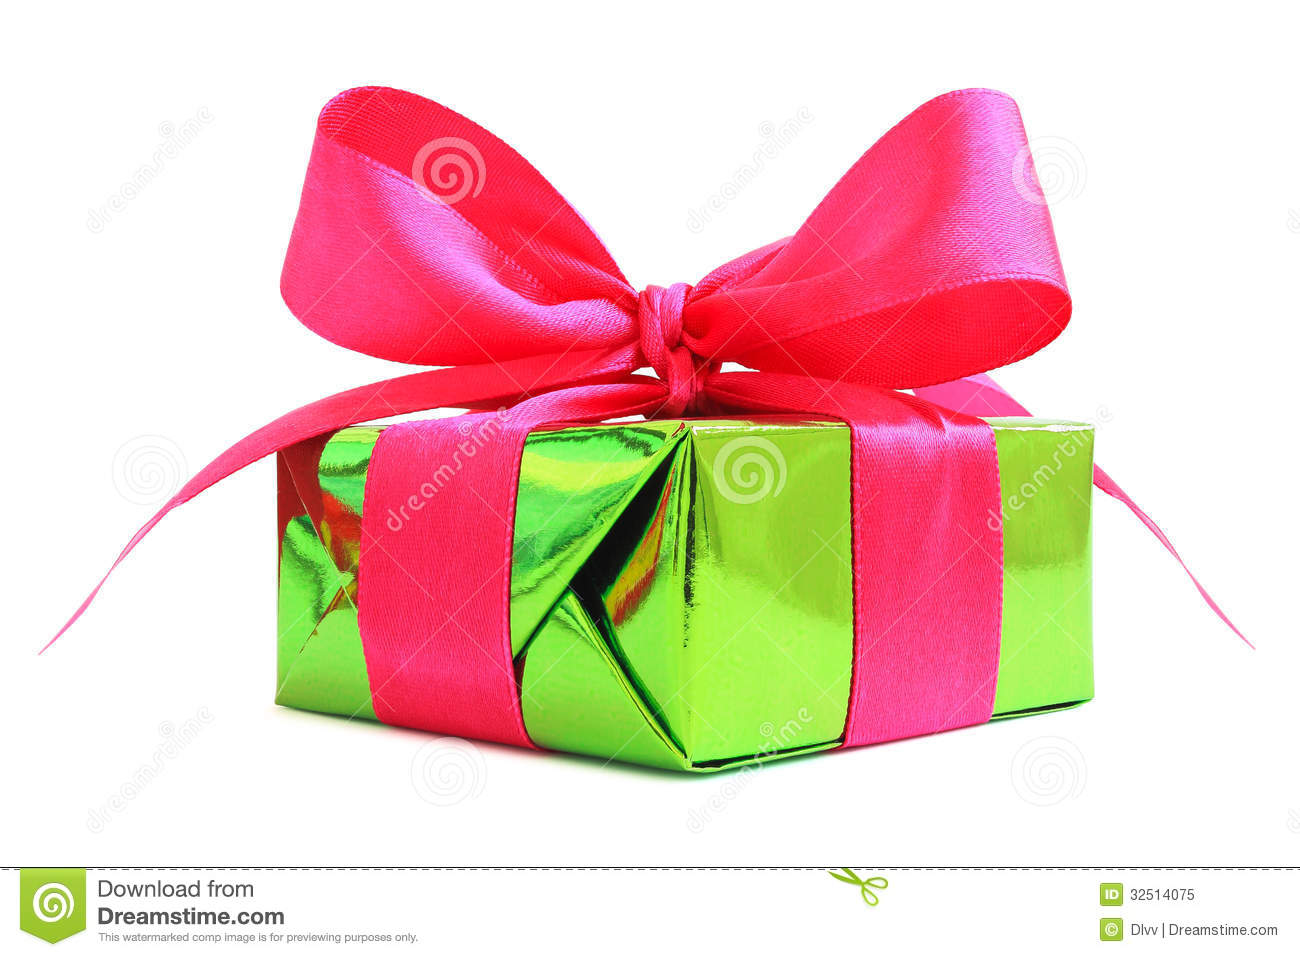 Green Glossy Gift Wrapped Present With Pink Satin Bow